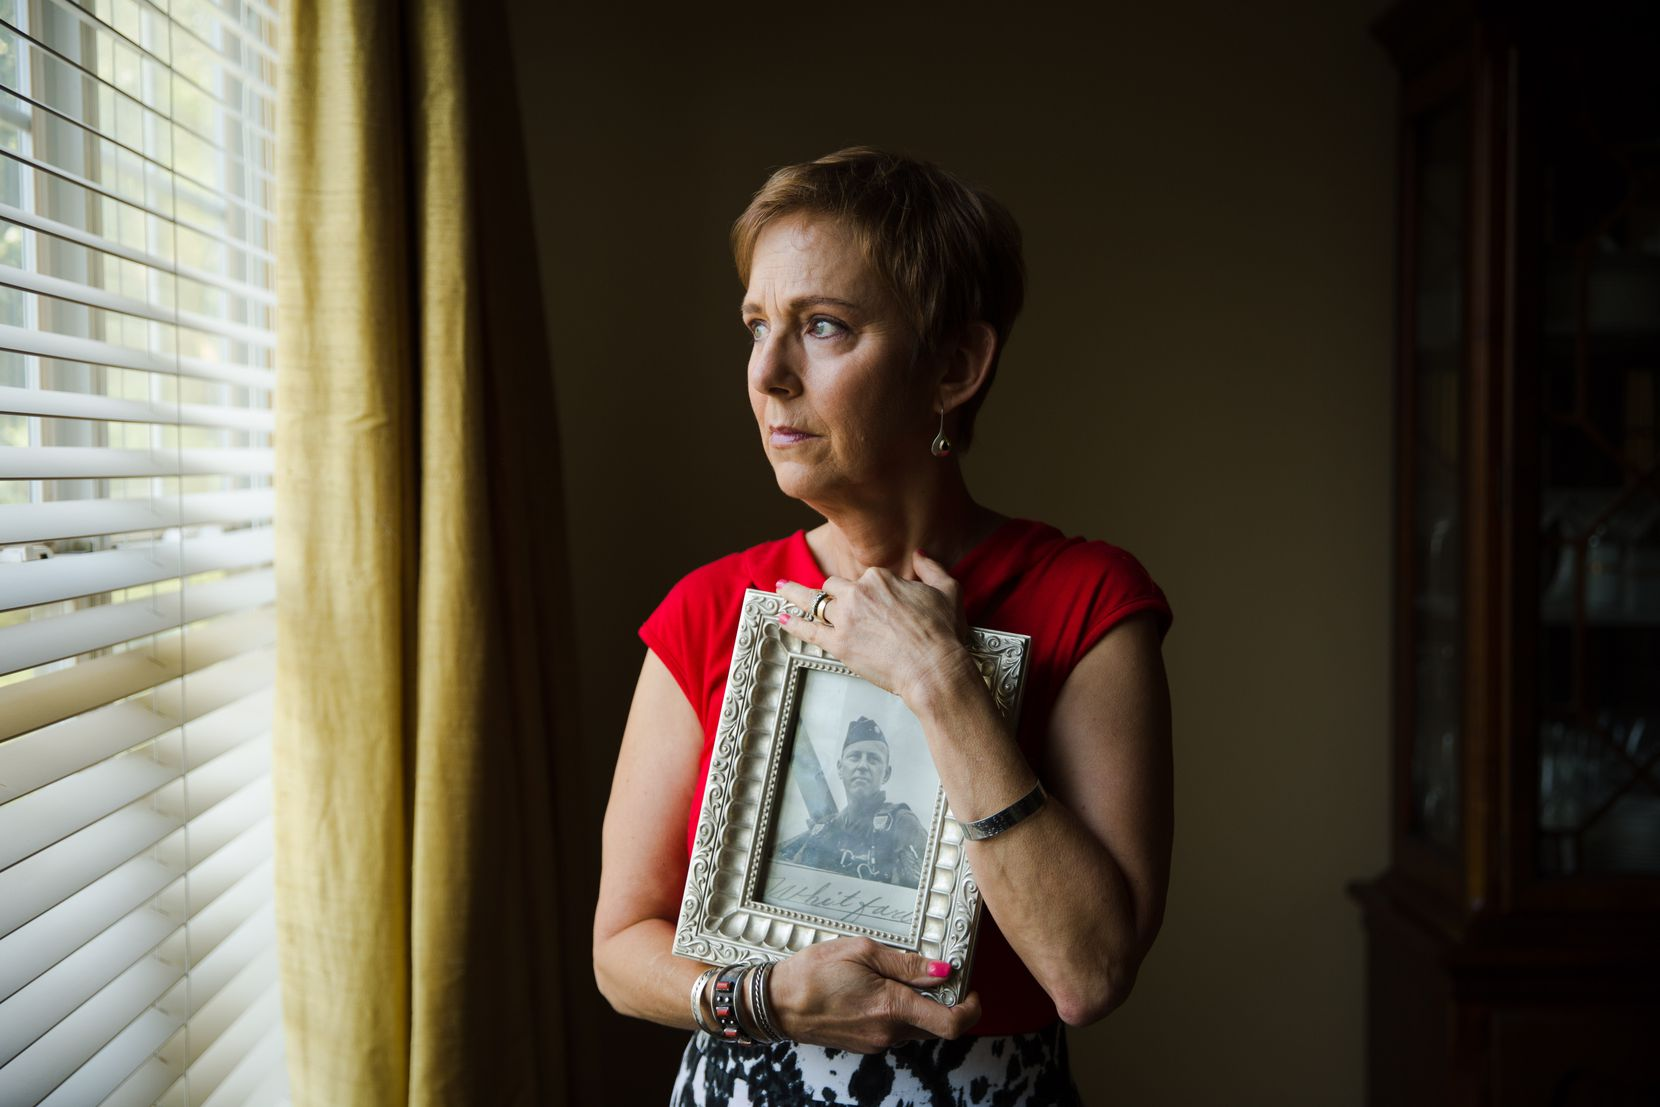 Nancy Eger of Alpharetta, Ga., has written to President Barack Obama in her quest to retrieve her father's remains. Teams have been back to search for Larry Whitford four times since 1995. Next month, Obama will become the first sitting president to visit Laos.